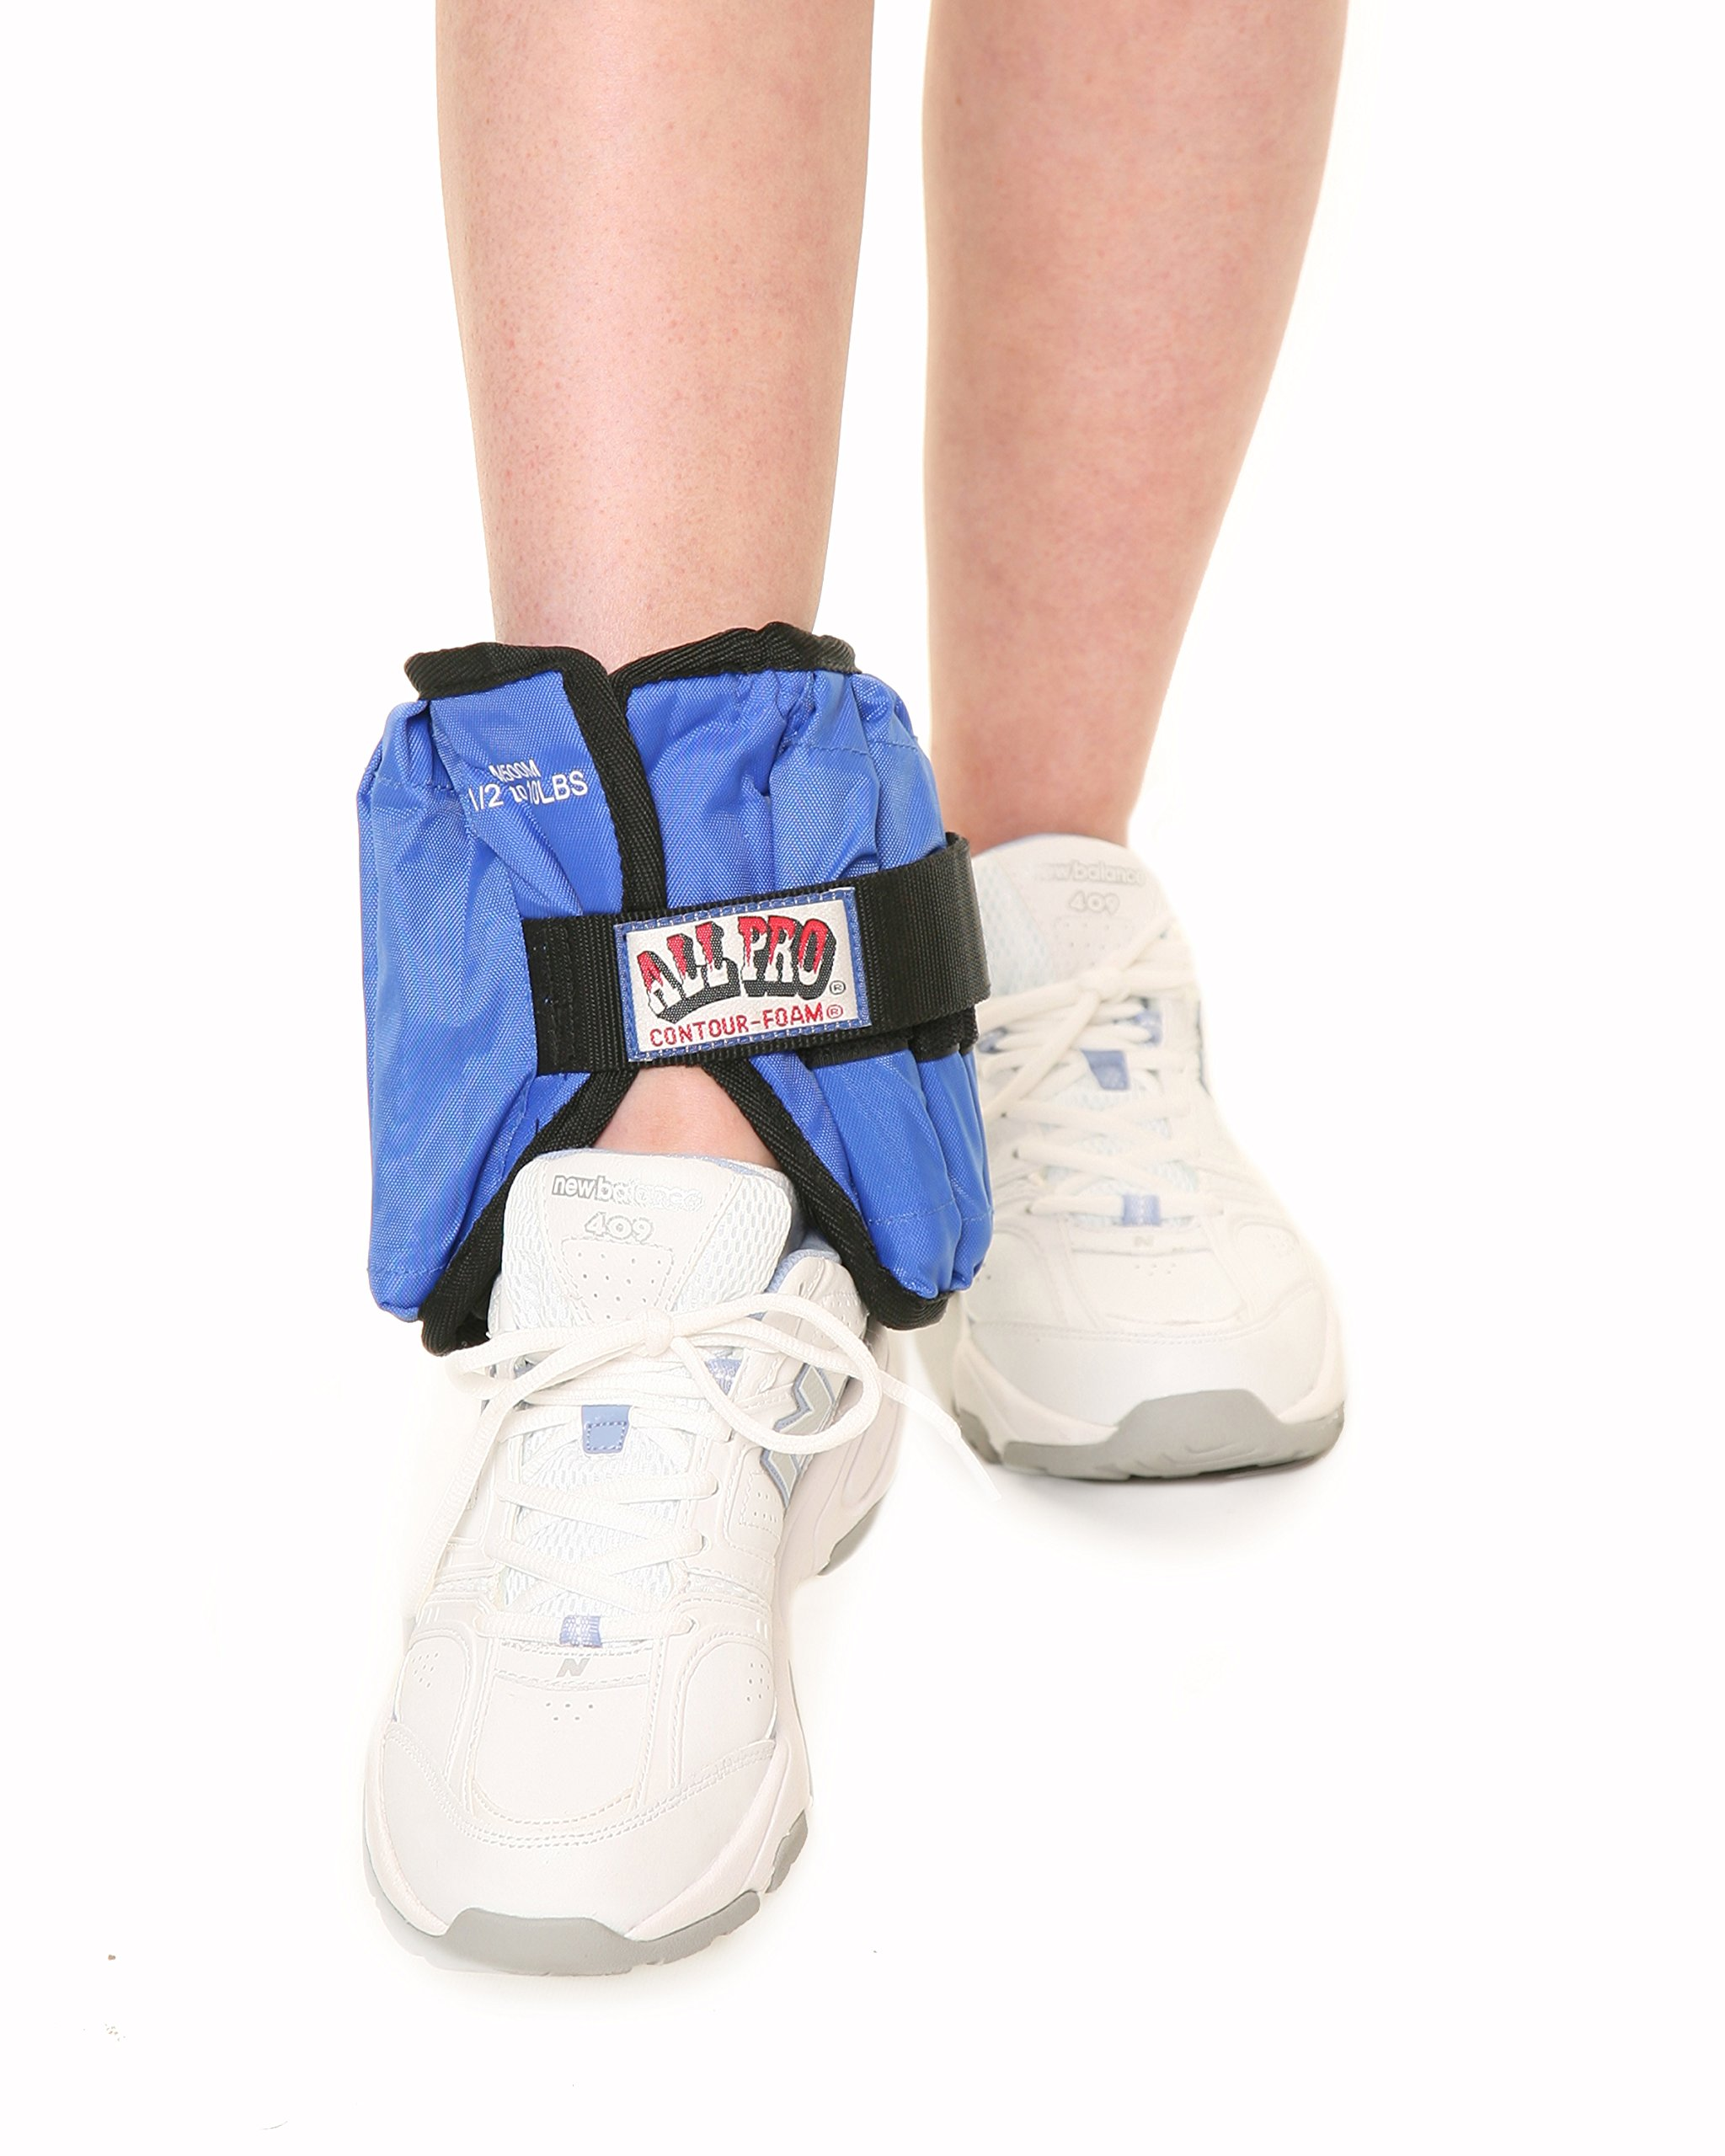 All Pro Adjustable Therapeutic Ankle & Wrist Weights - Ankle: 10 lb. = 20, 1/ 2-lb.wts. by Rolyn Prest